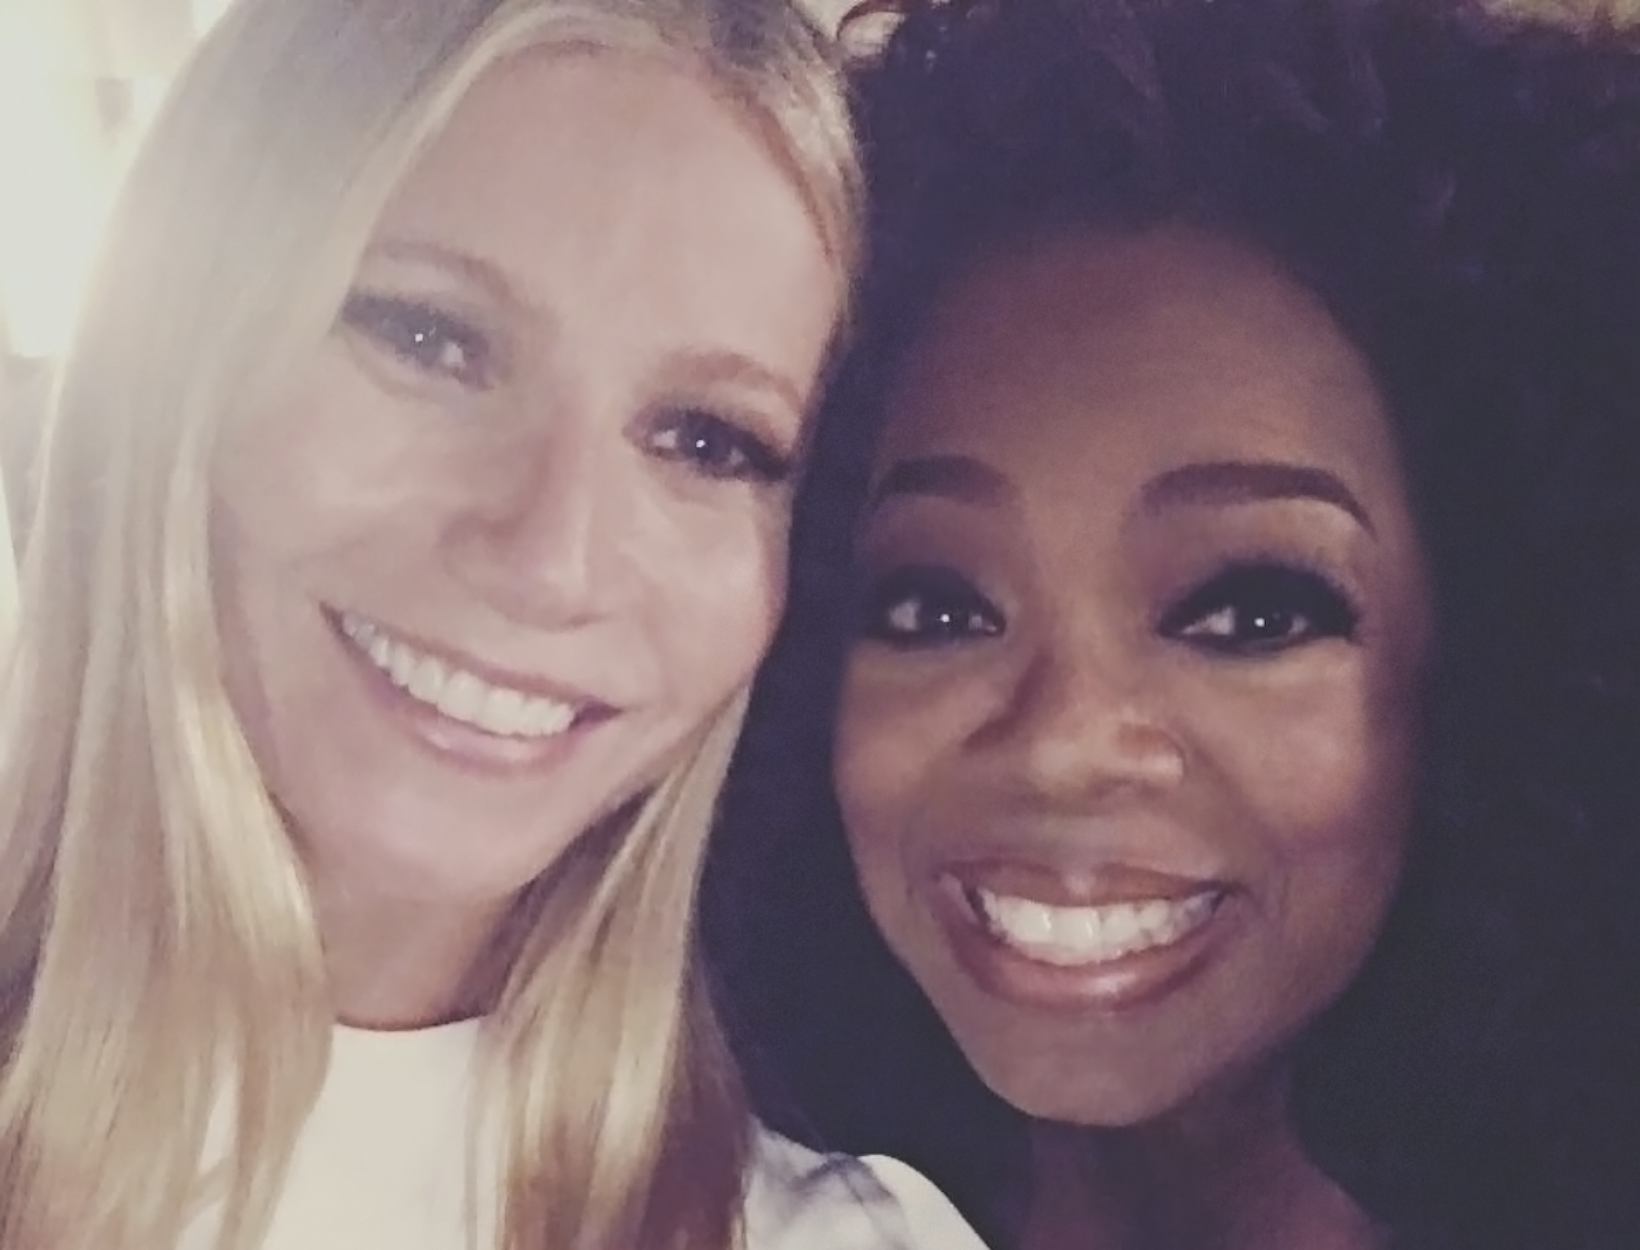 Oprah Winfreys Interview With Gwyneth Paltrow Delves Into